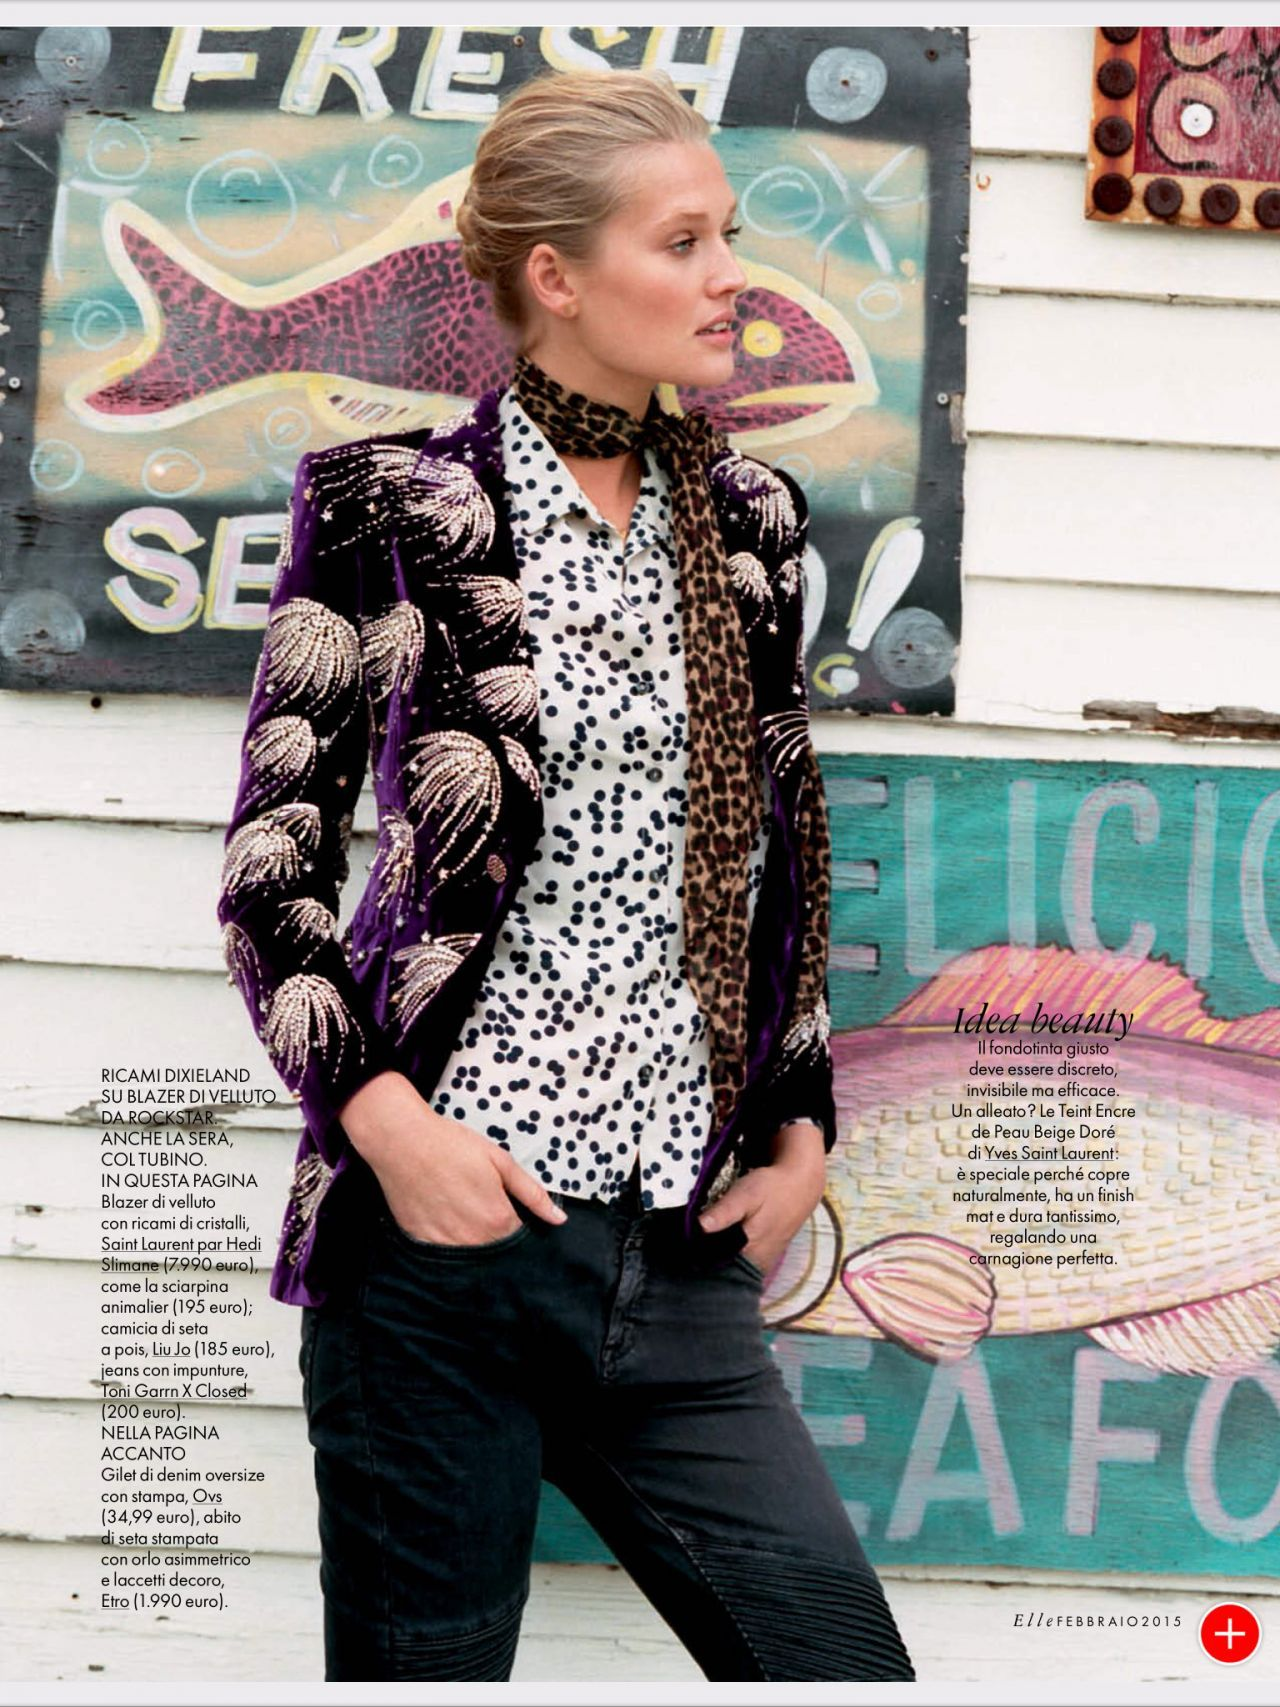 Toni Garrn U2013 Elle Magazine February 2015 Issue